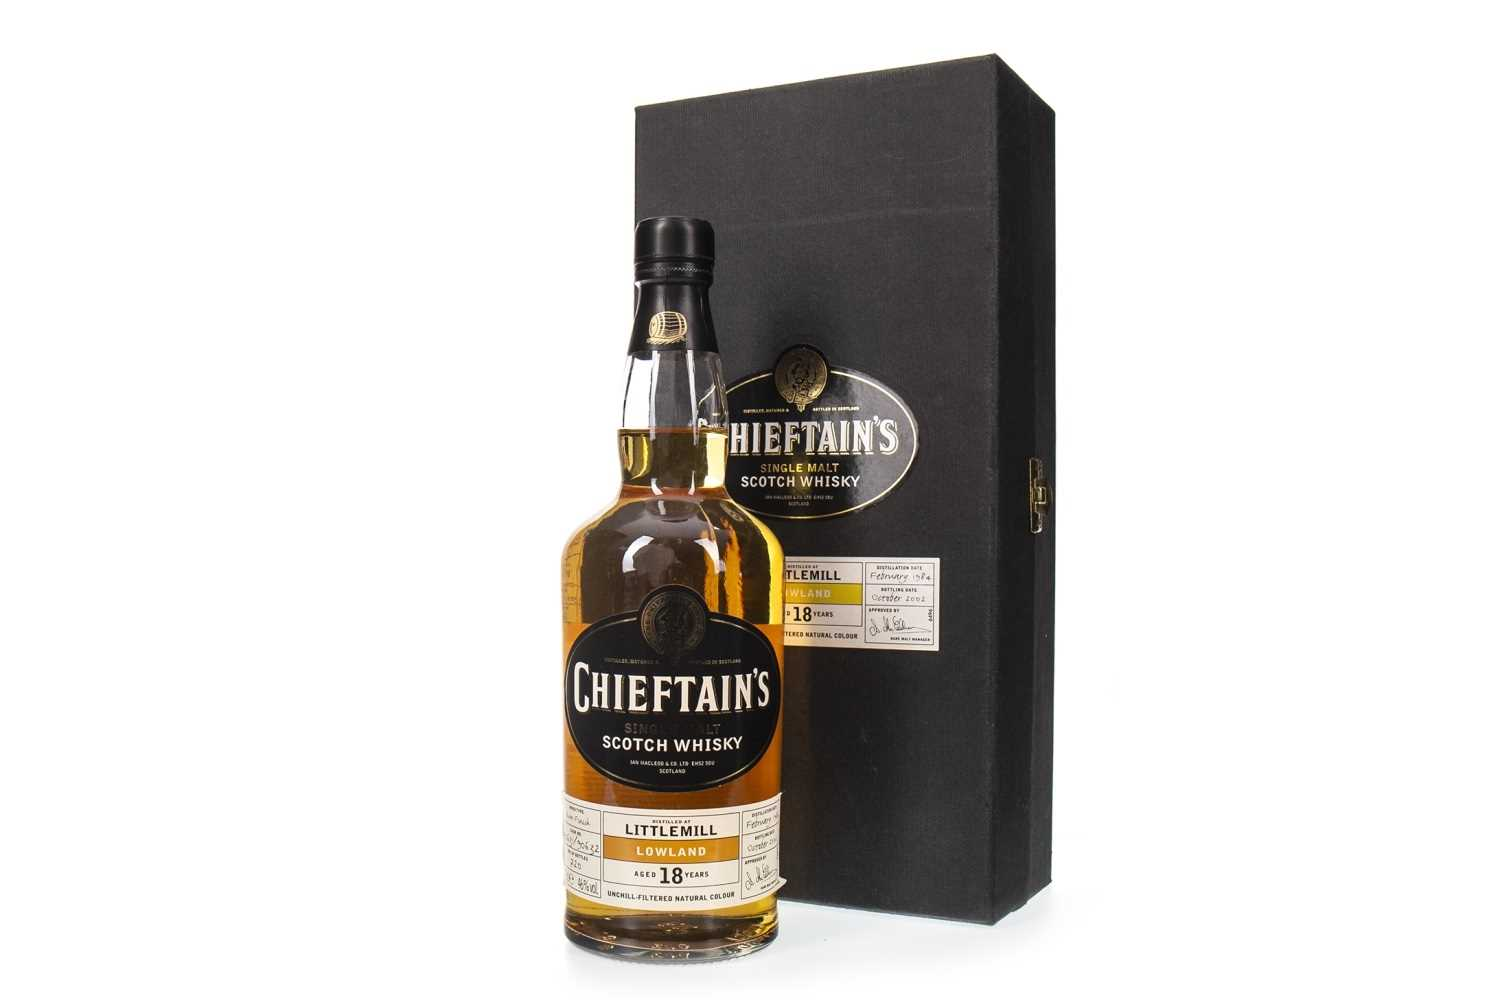 Lot 14-LITTLEMILL 1984 CHIEFTAINS 18 YEARS OLD